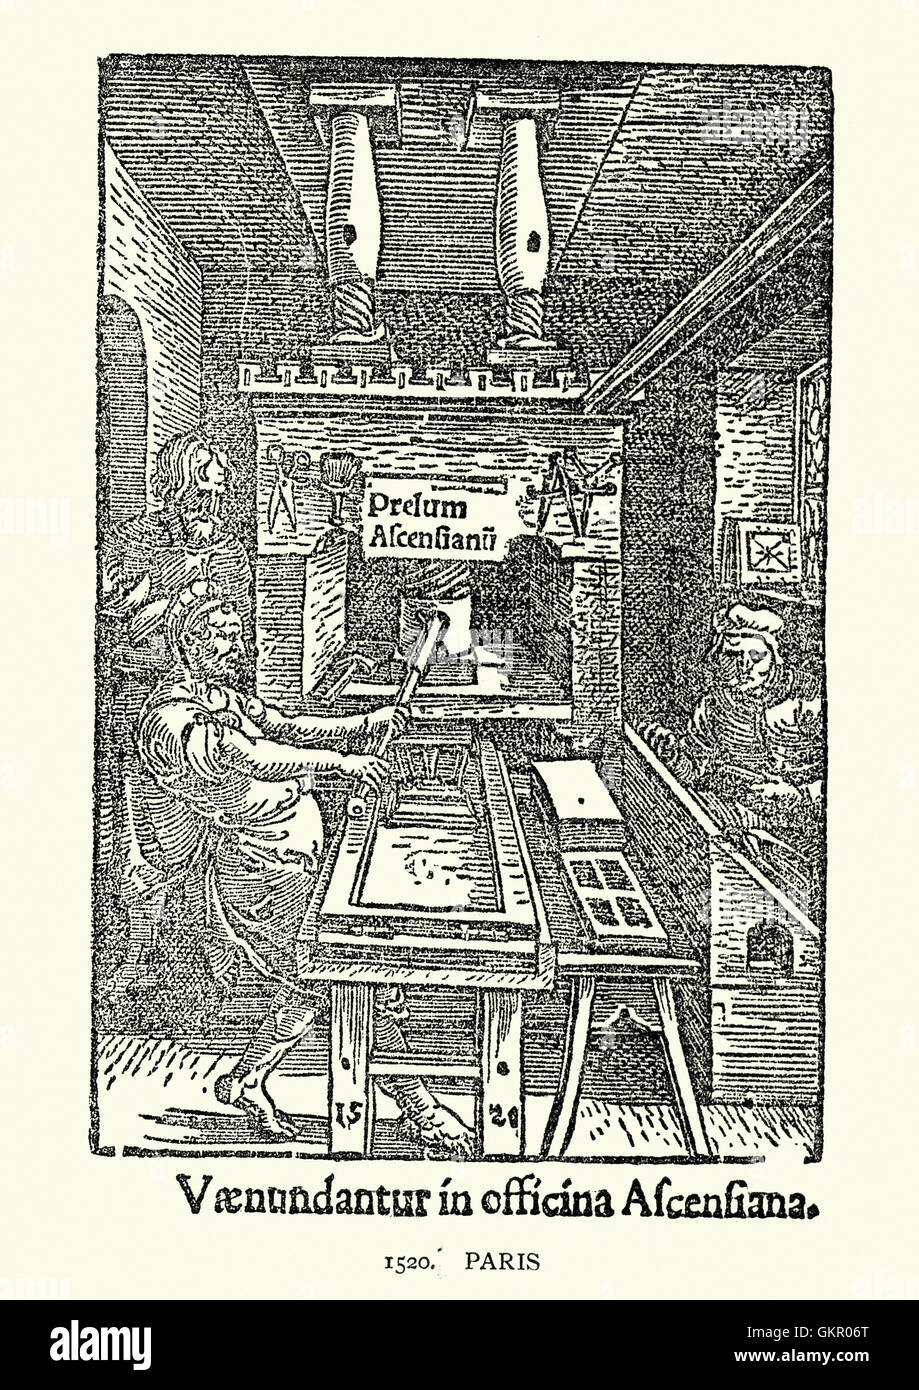 Early french woodcut of a man using a printing press, Paris, c. 1520 - Stock Image